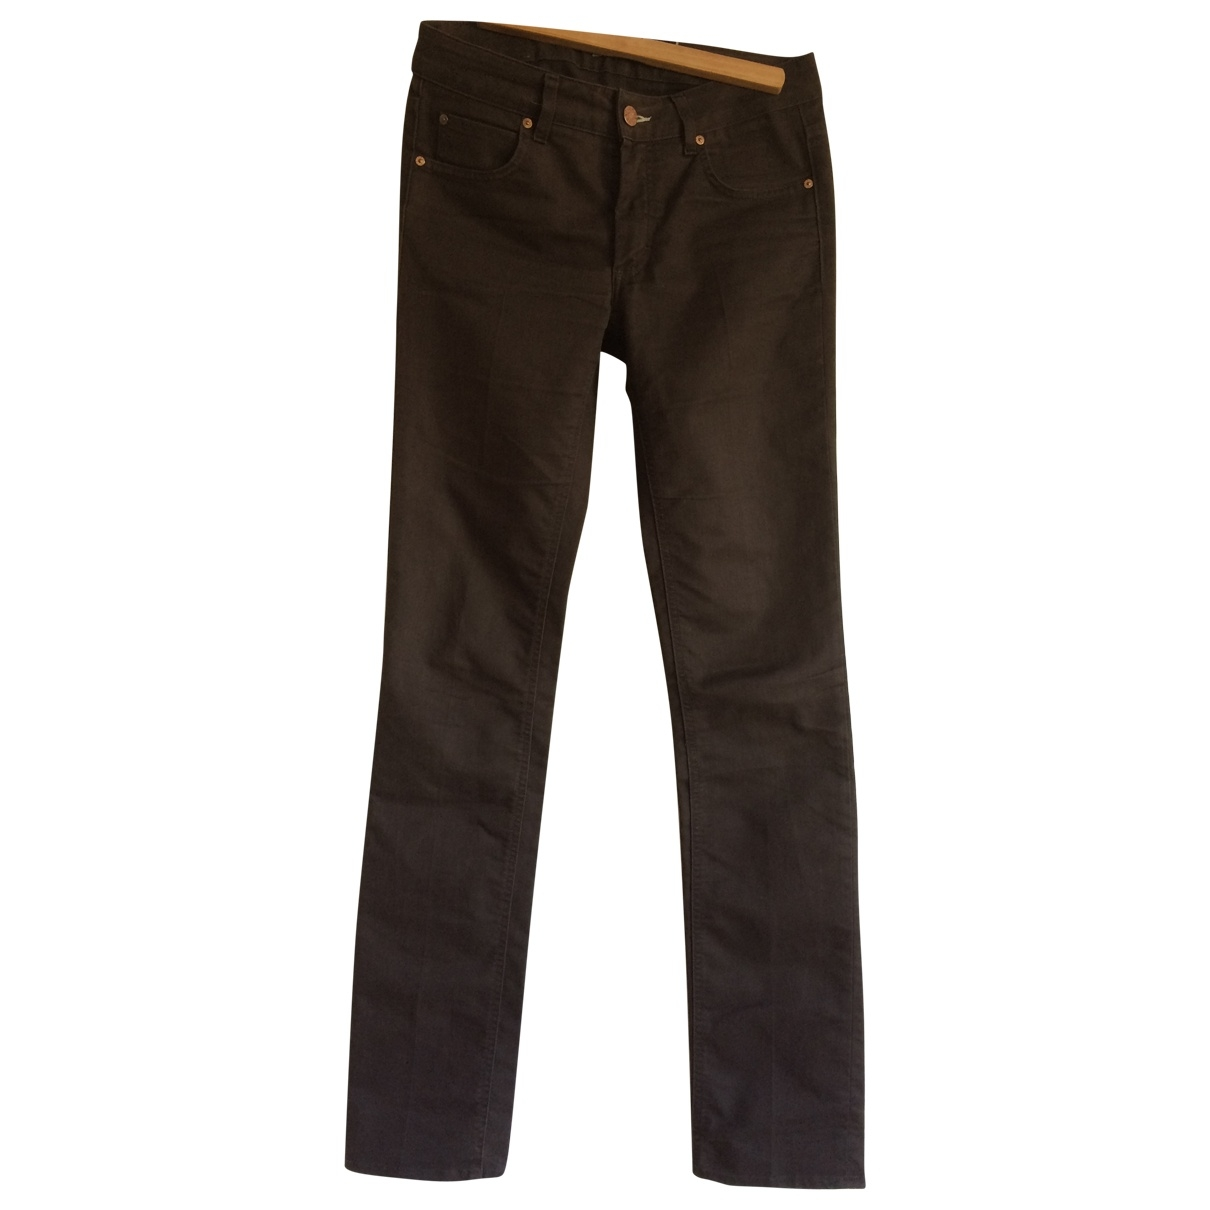 Acne Studios \N Brown Cotton Trousers for Women M International